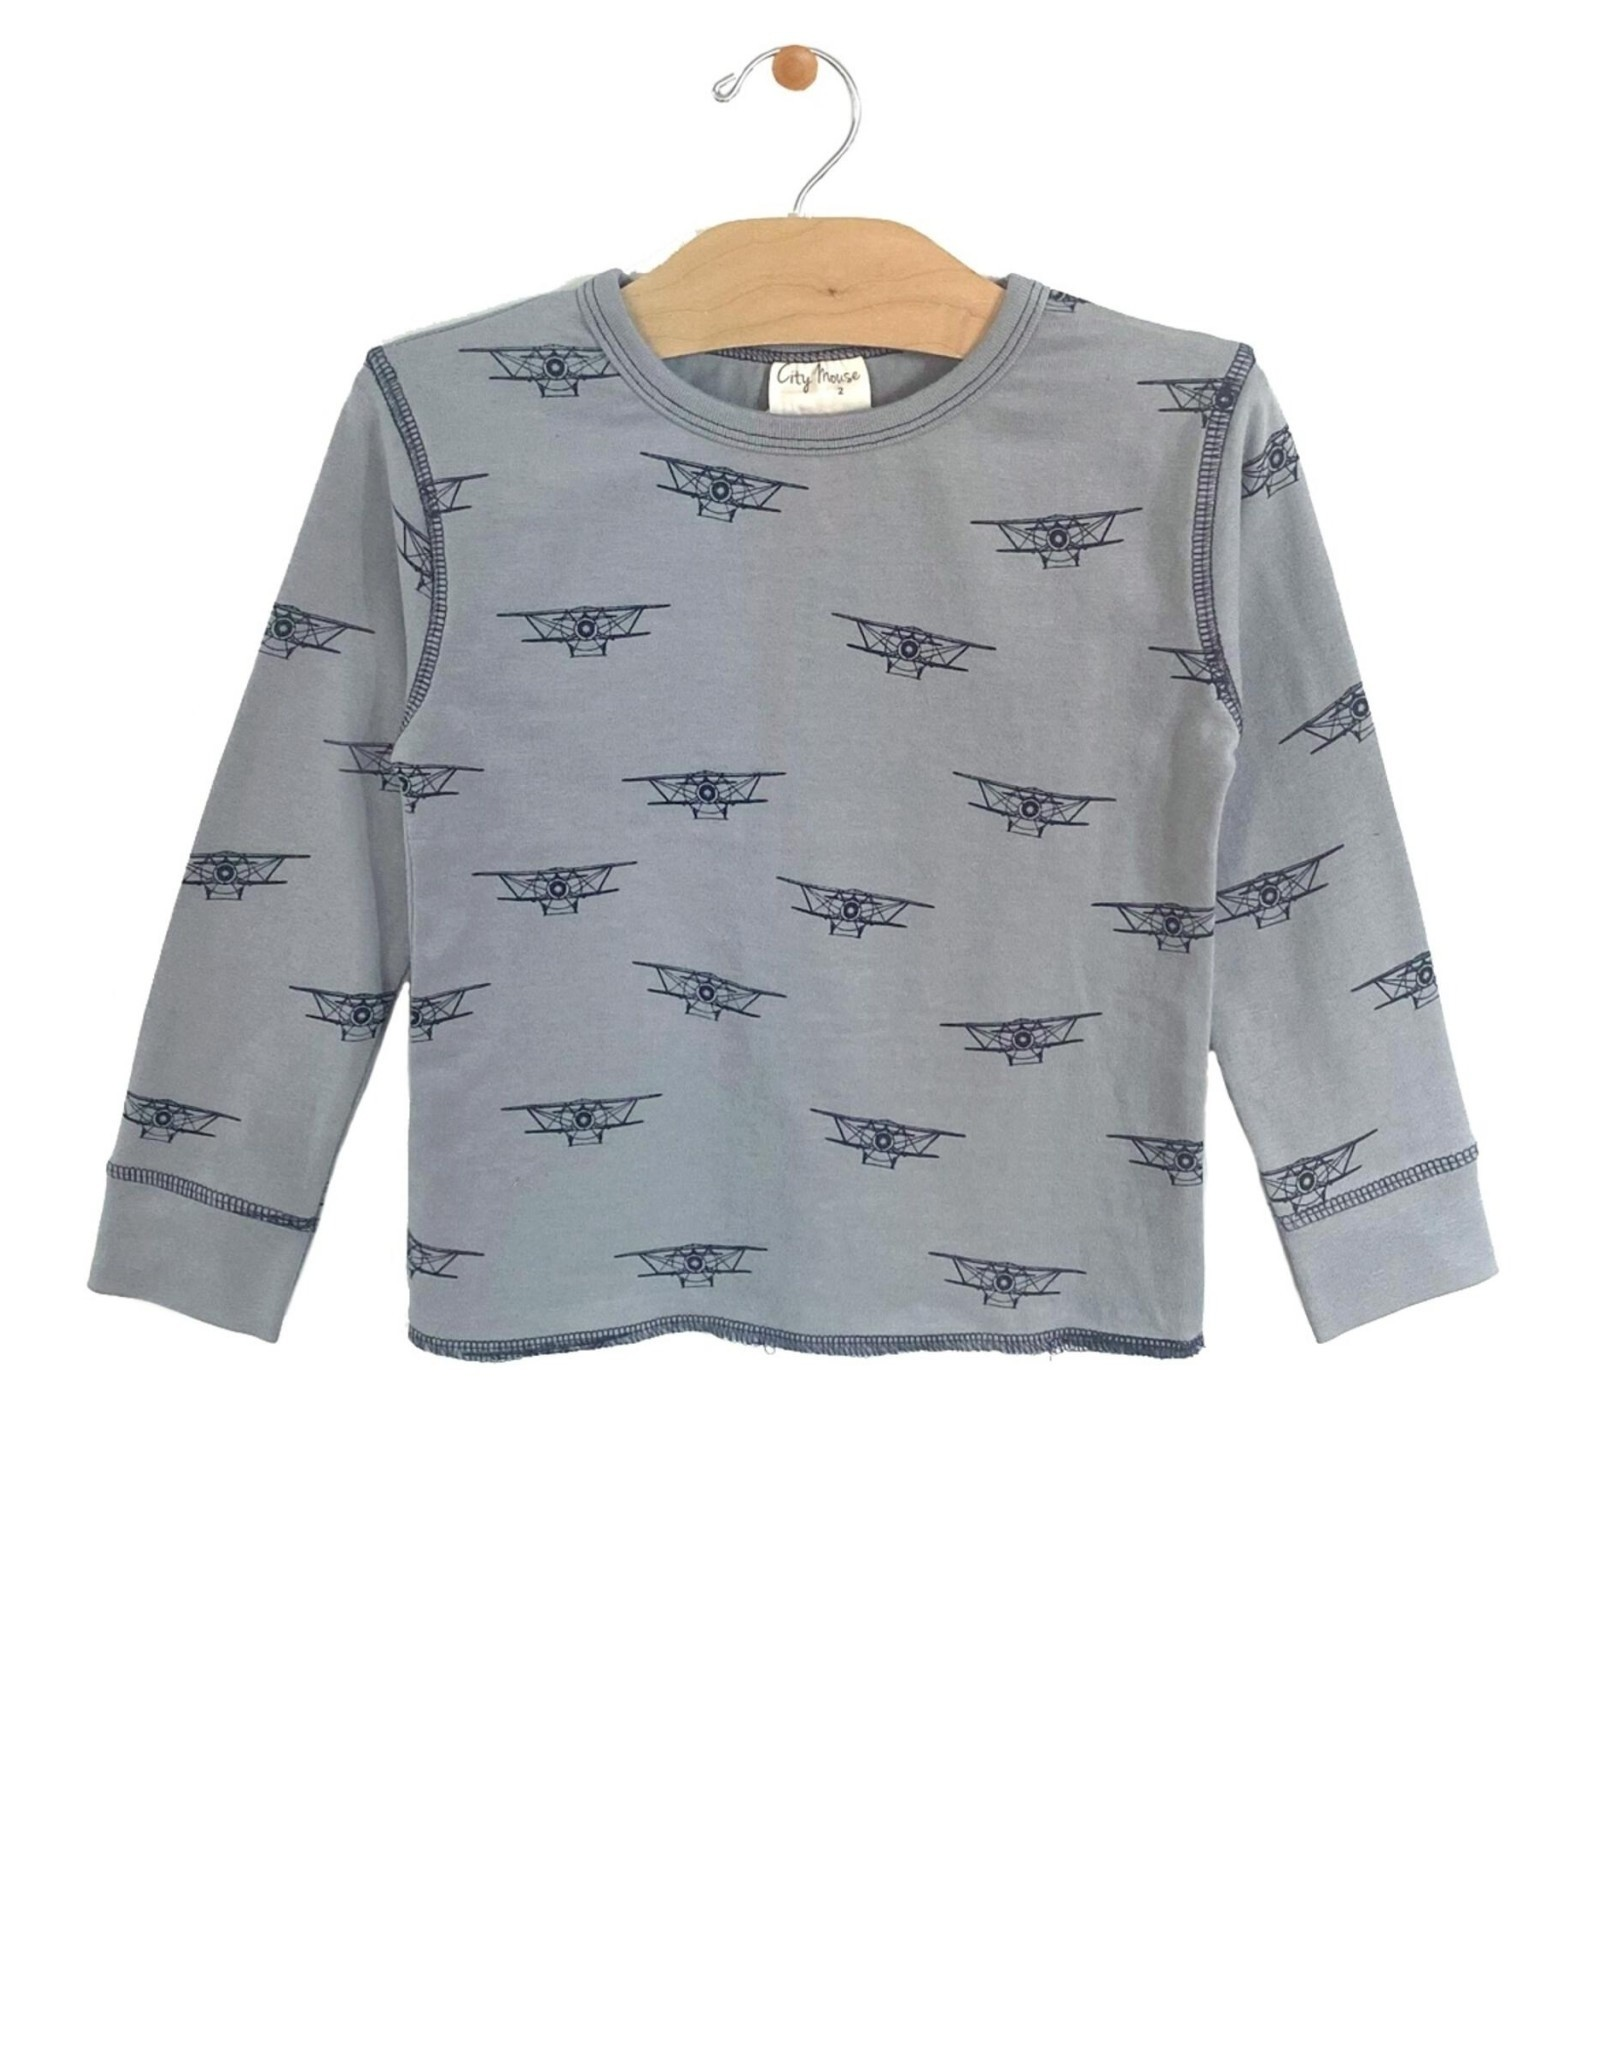 City Mouse stitch tee- biplanes